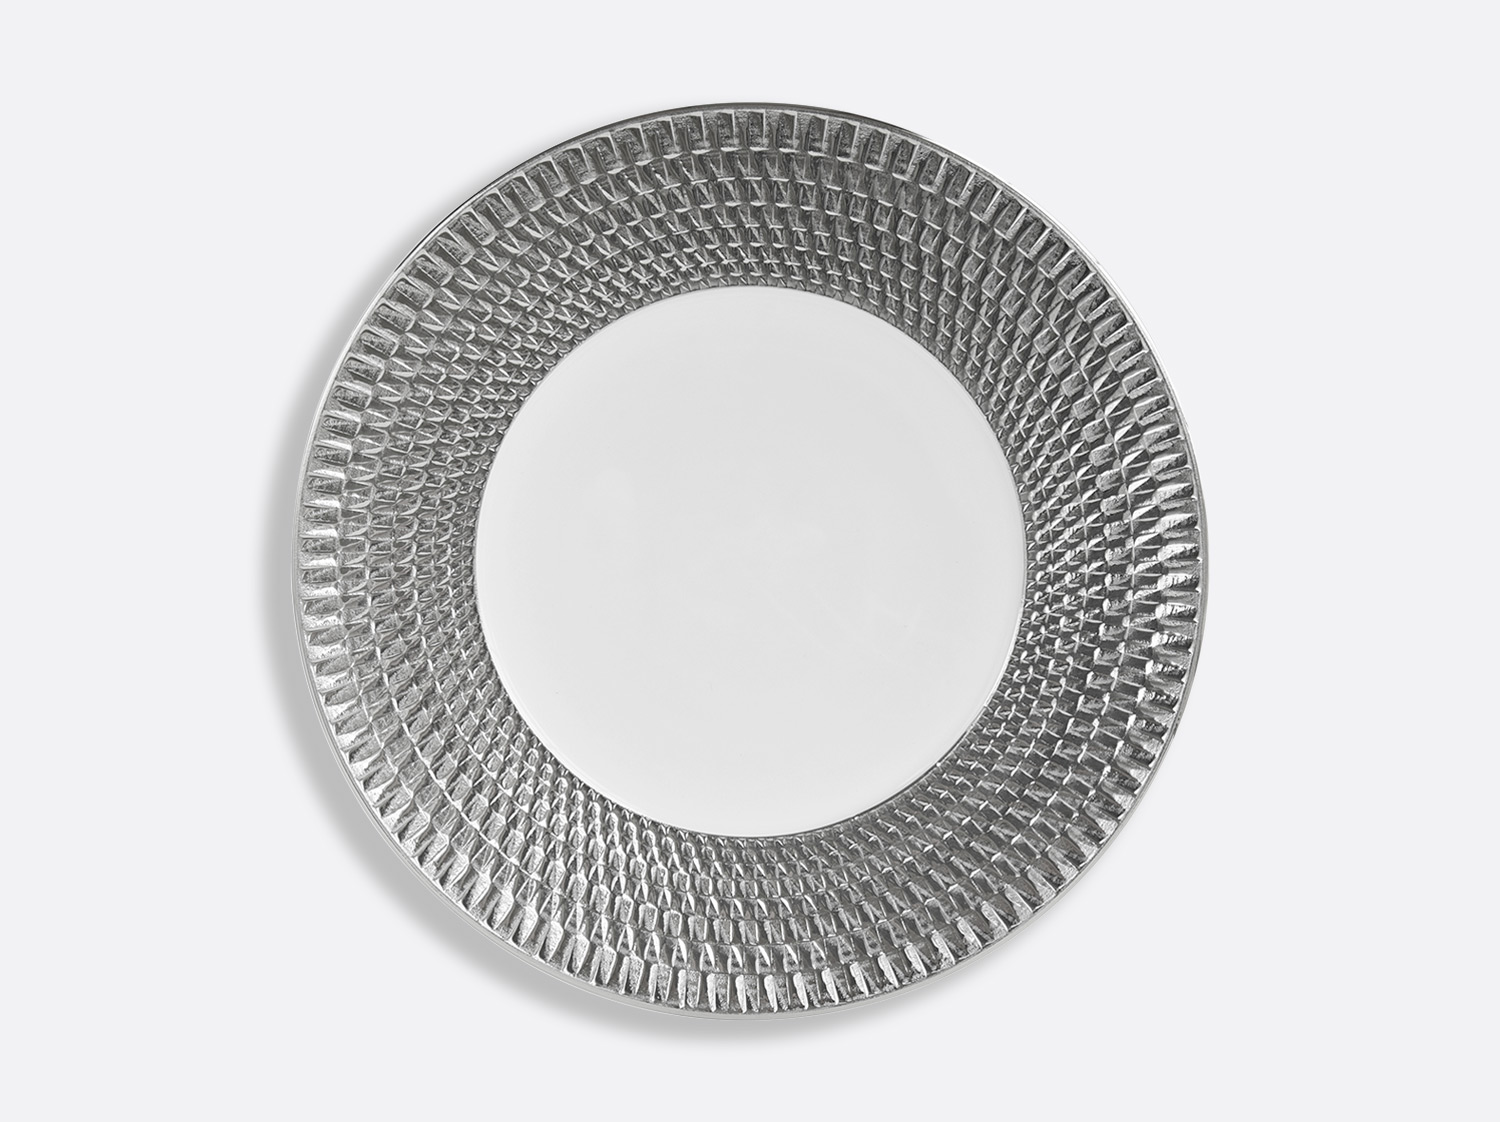 Assiette de présentation 29,5 cm en porcelaine de la collection Twist platine Bernardaud